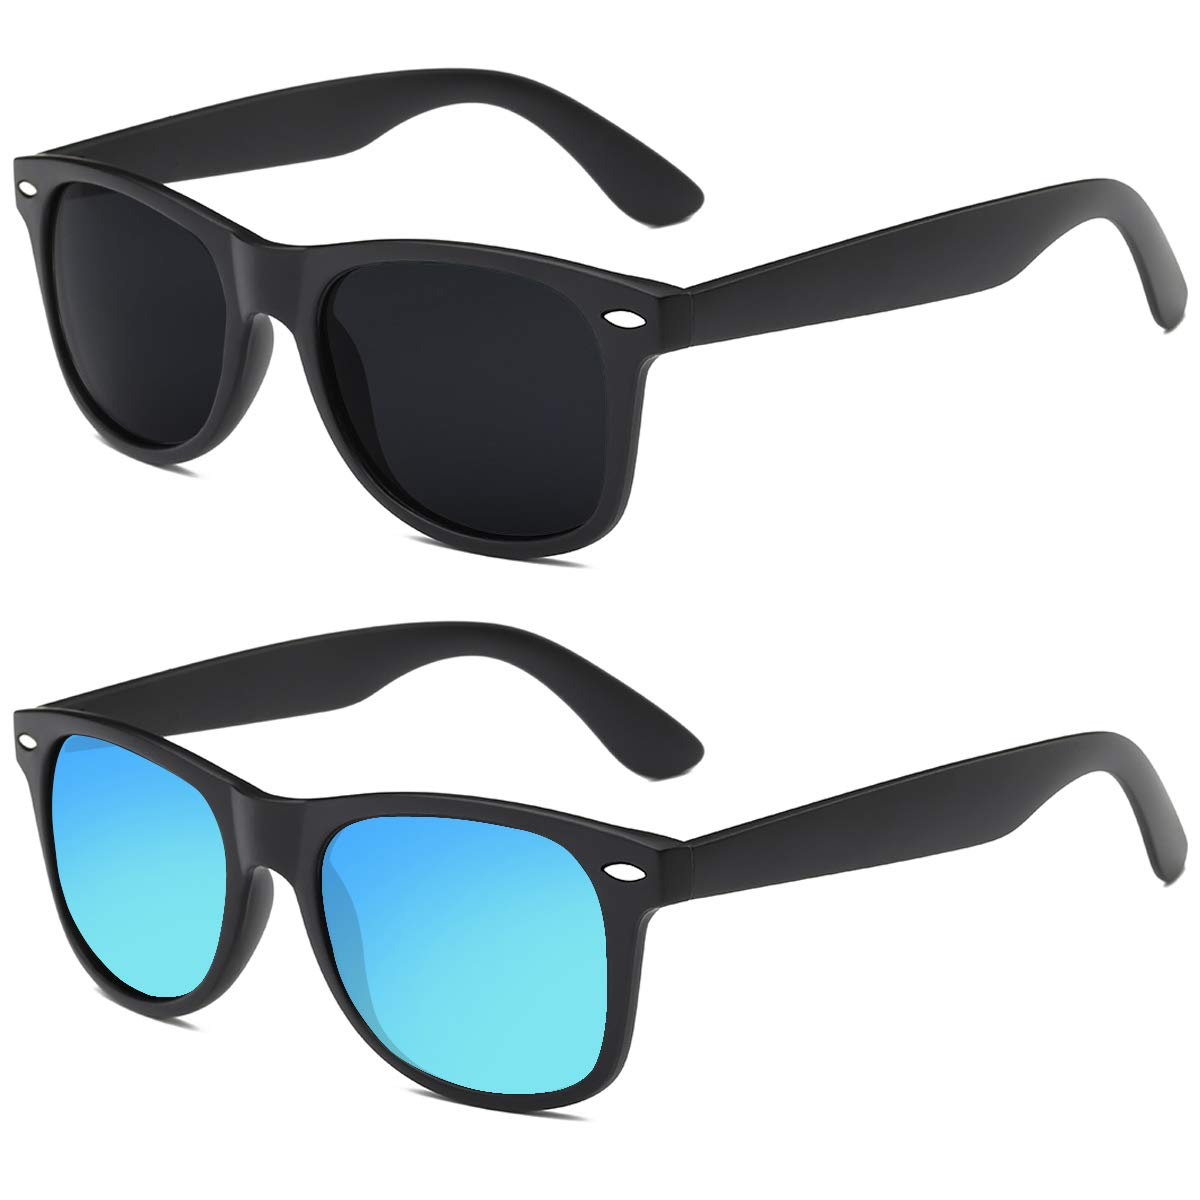 Polarized Sunglasses for Men 2Pack - FEIDU Polarized Retro Sunglasses for Men (black-blue) by FEIDU